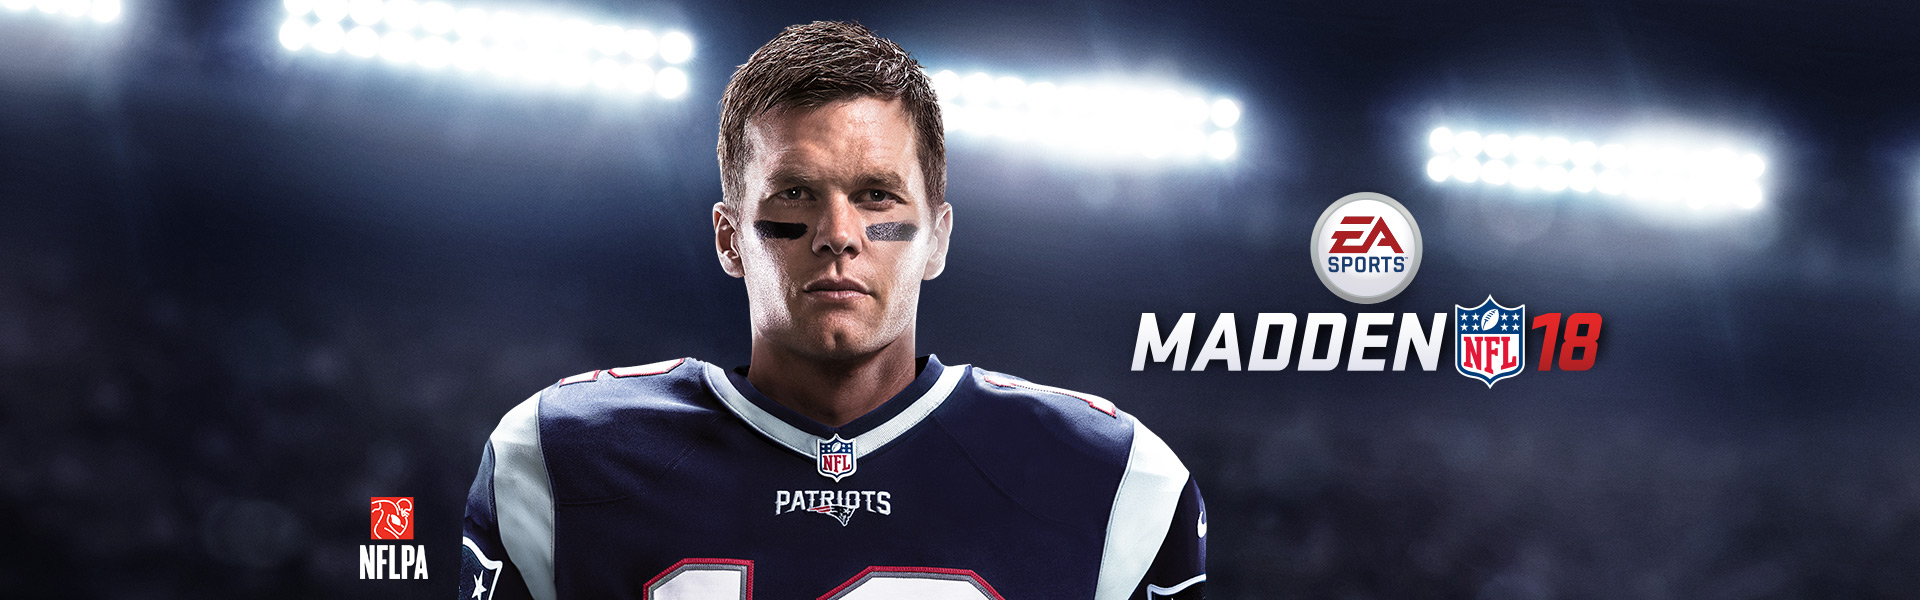 Tom Brady portant l'uniforme des Patriots